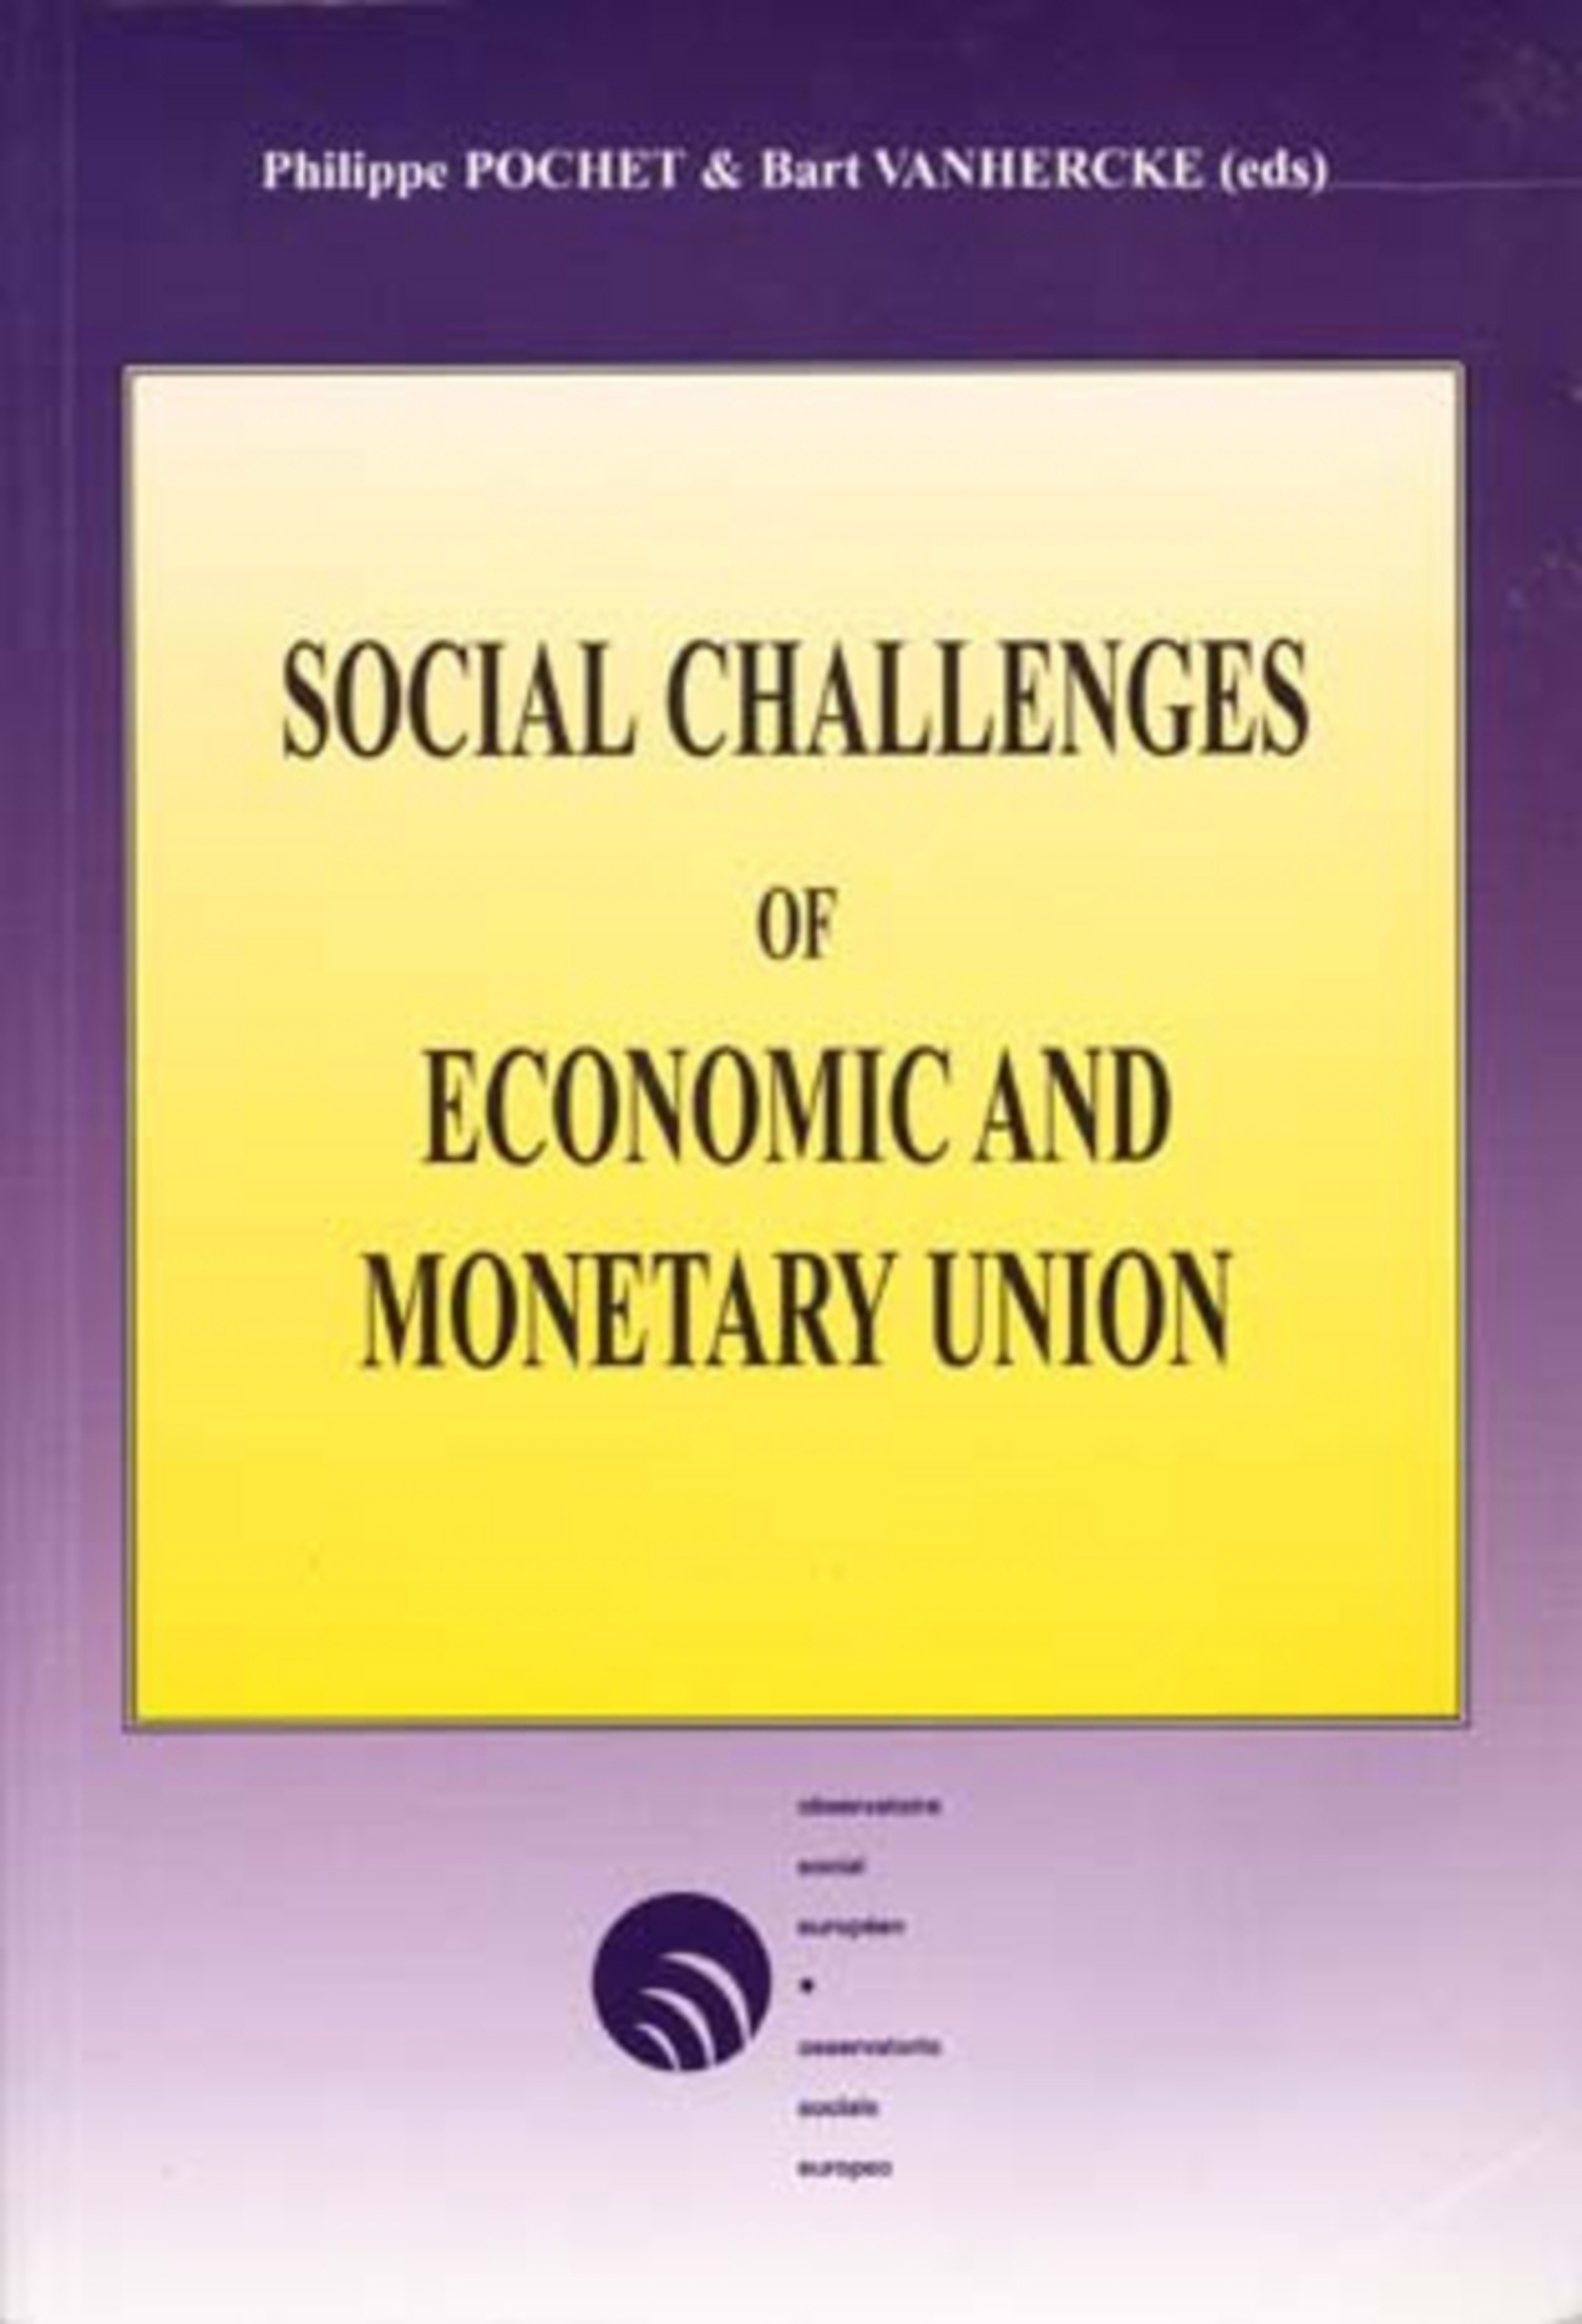 Title: Social Challenges of Economic and Monetary Union